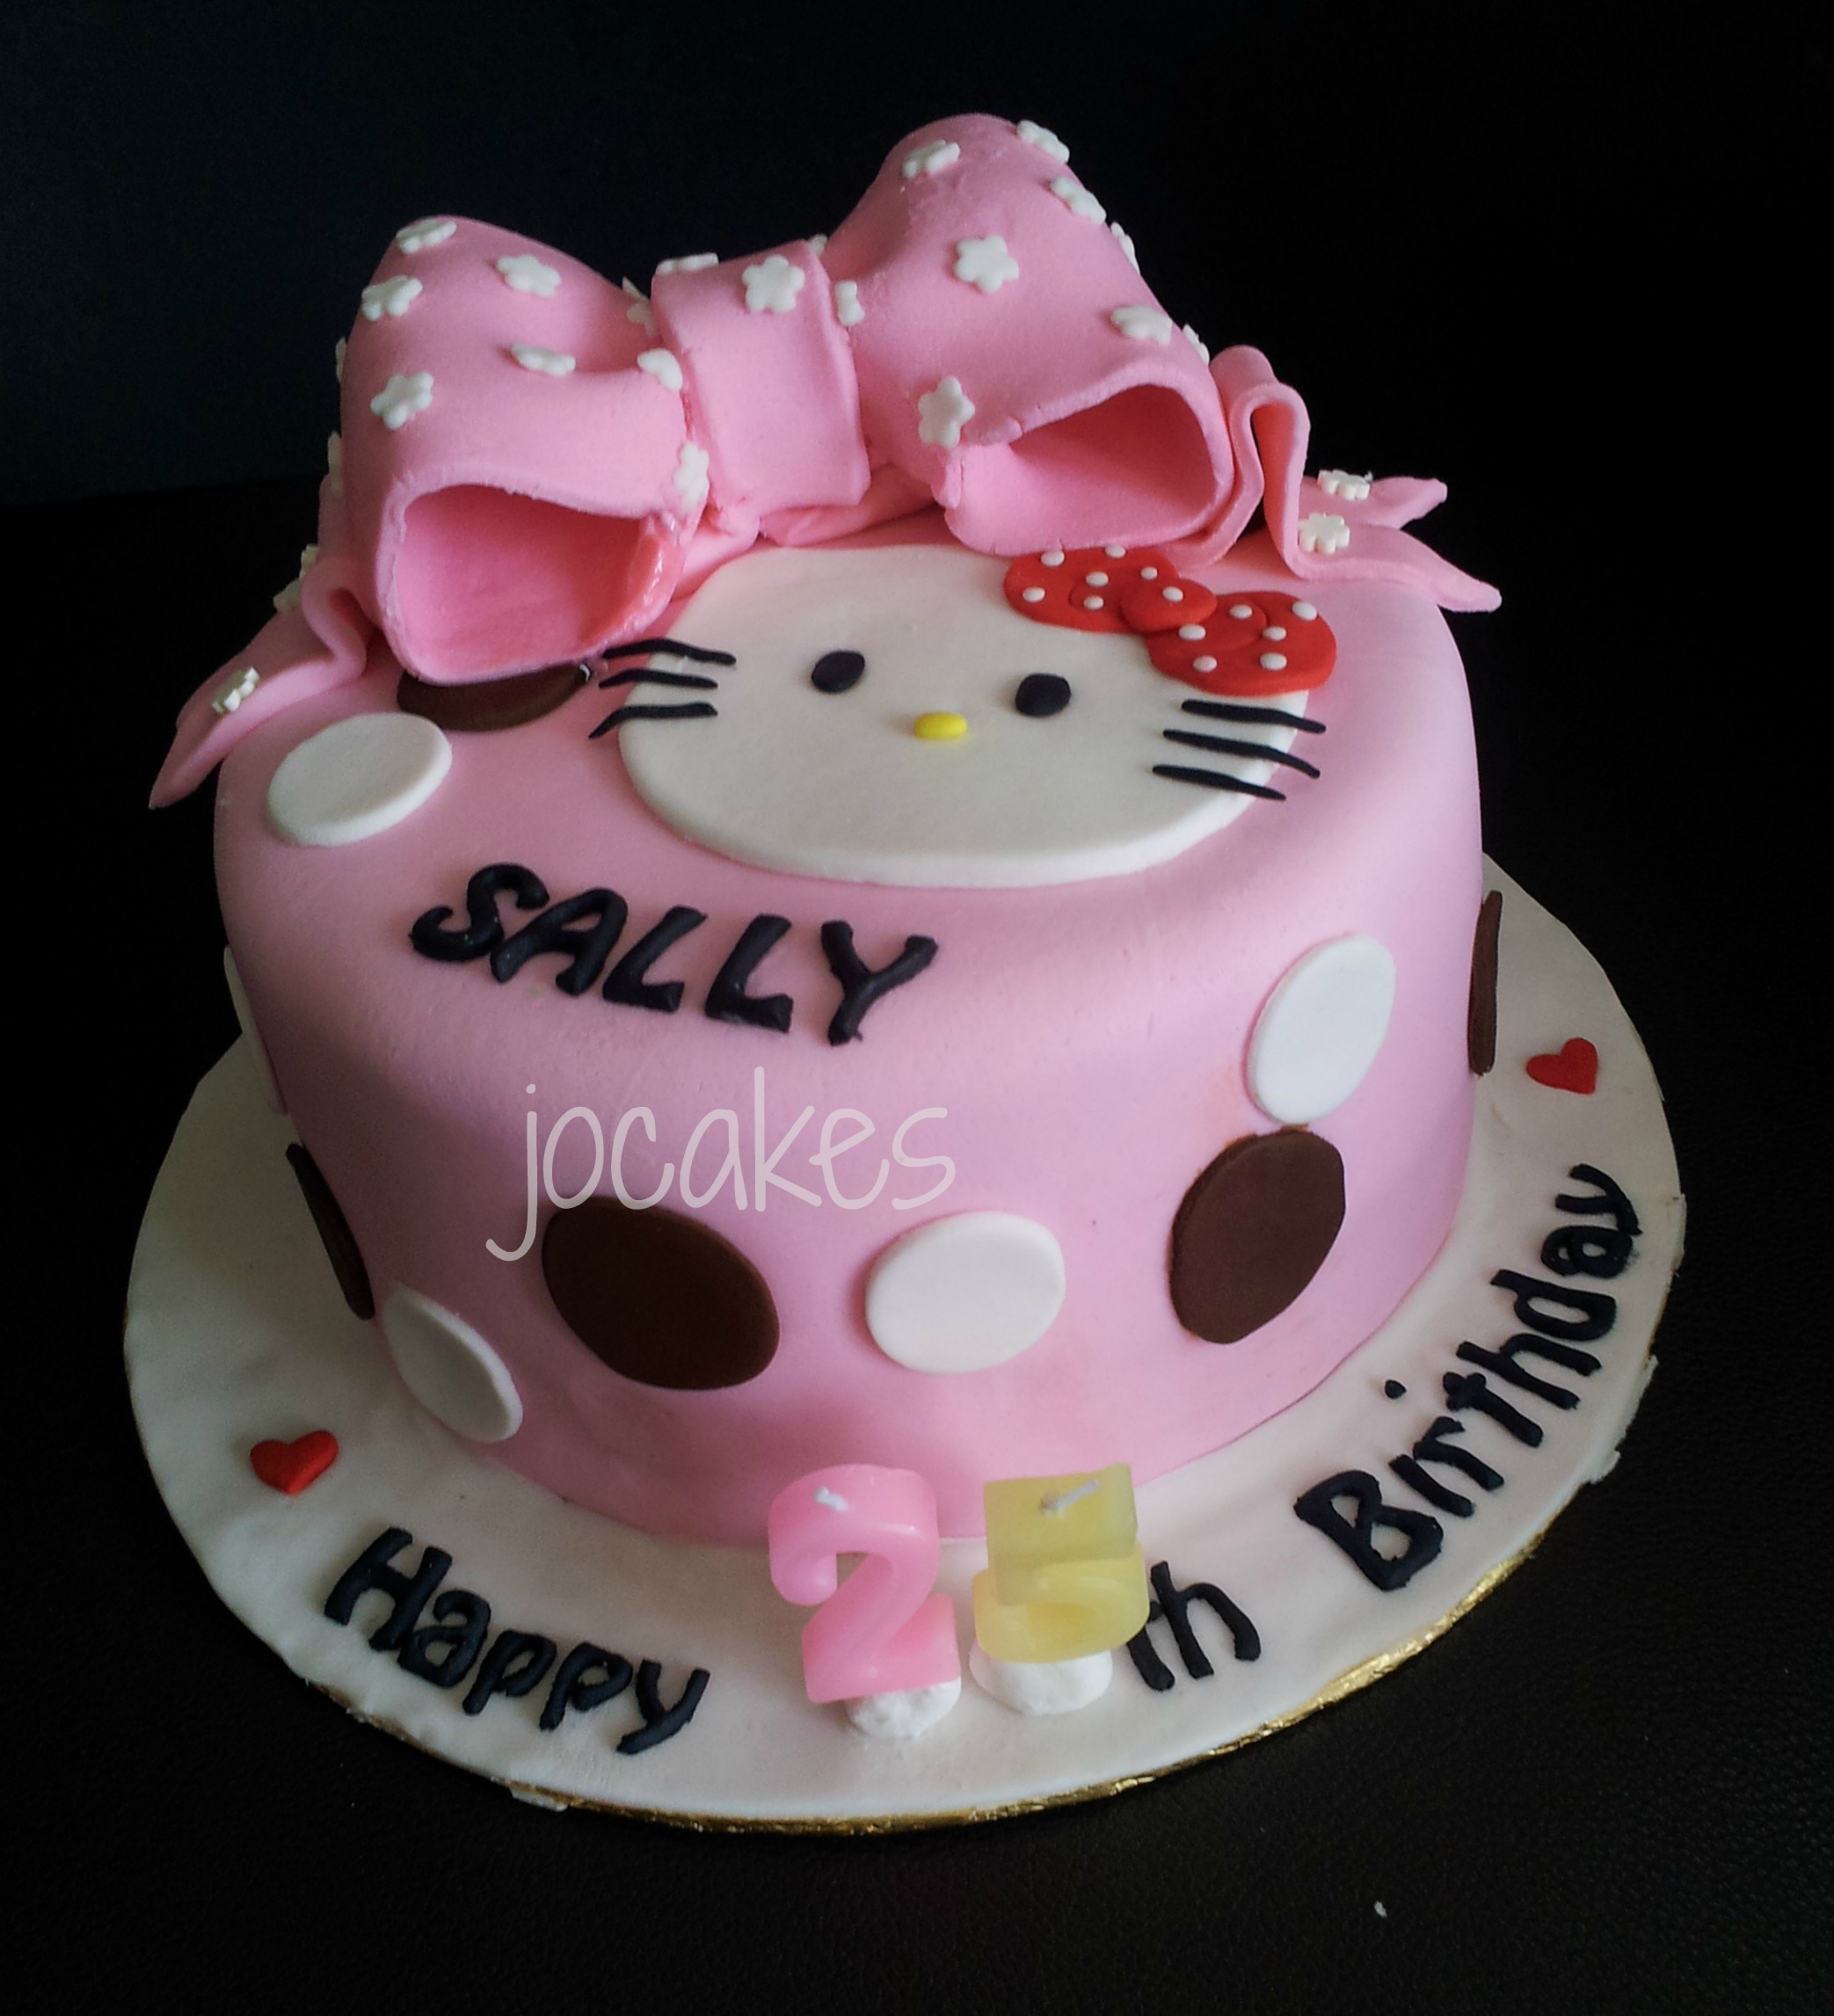 Hello Kitty Cake For Sally Jocakes